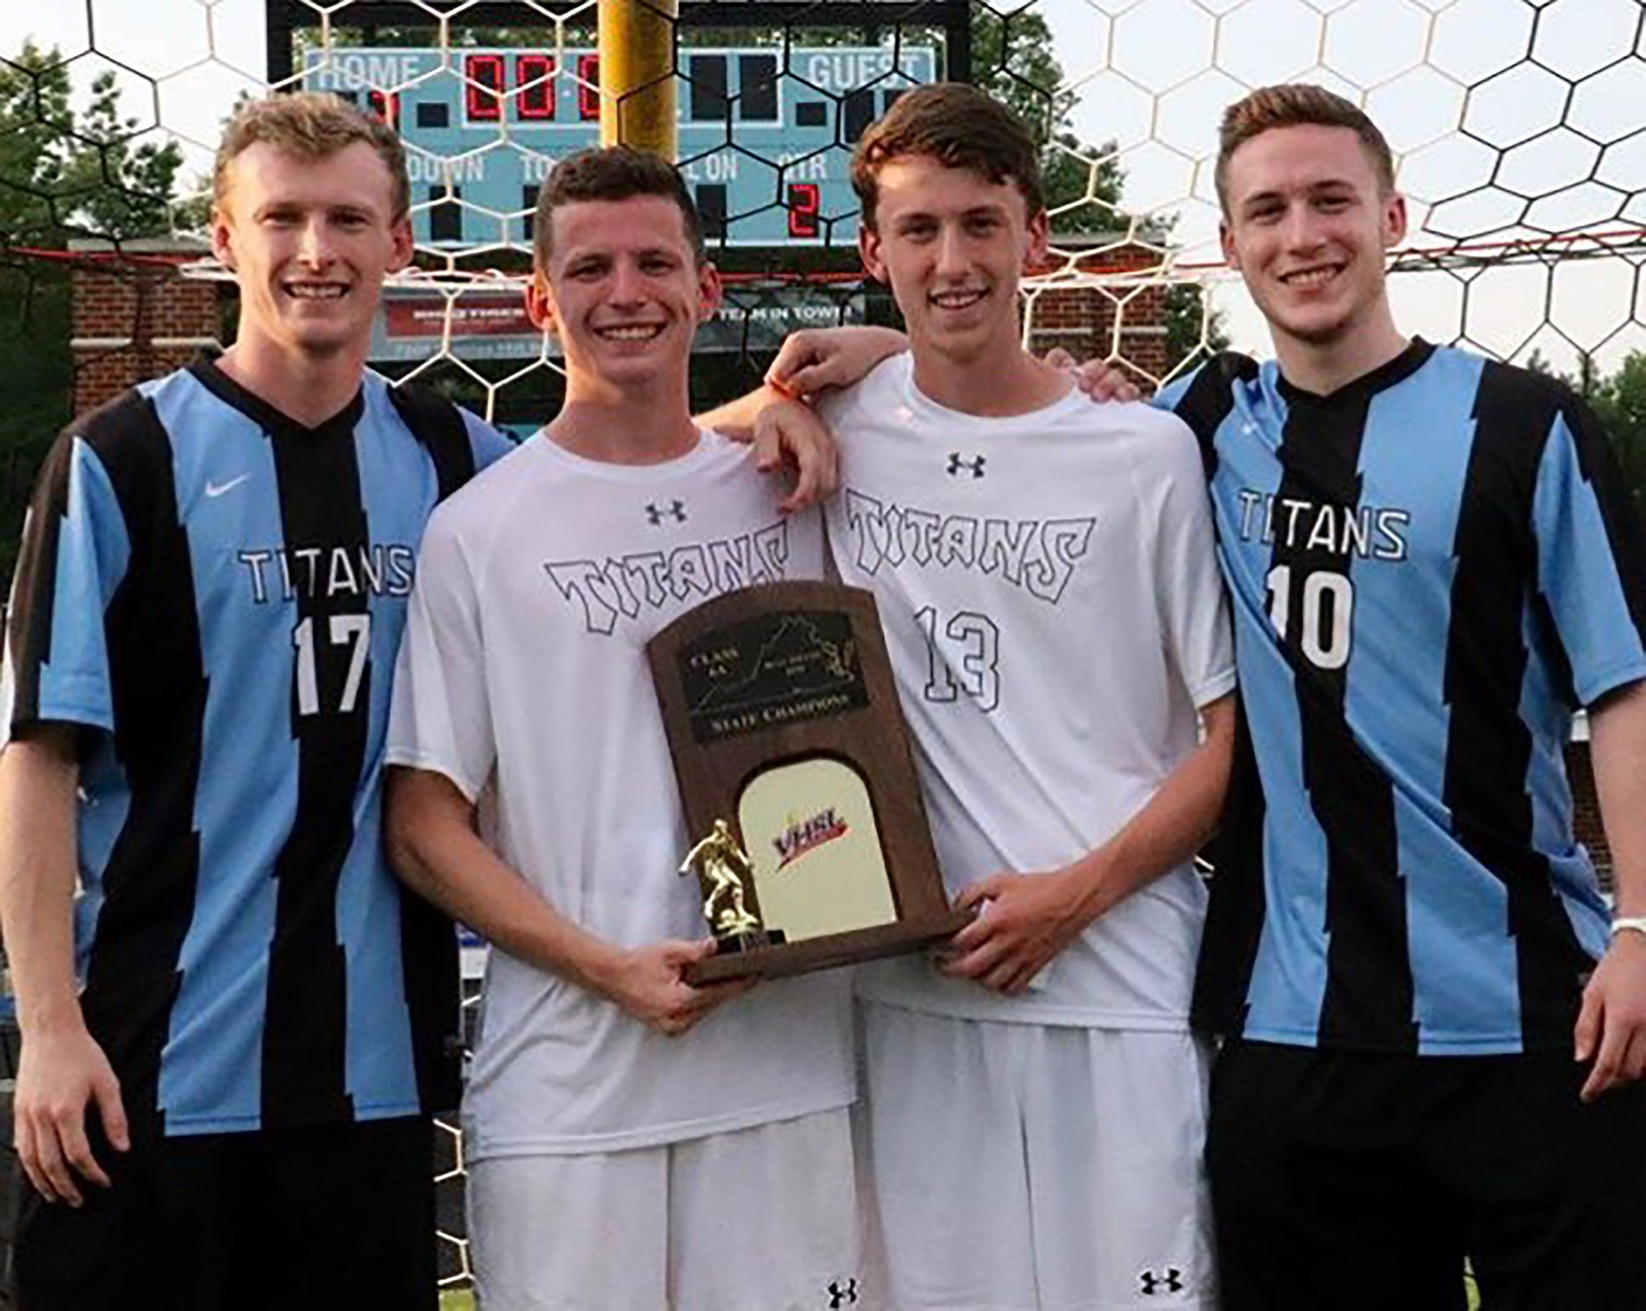 The Pikunas brothers (left to right) -- Ryan, Patrick, Quinn, and Chris -- pose after their high school captured the 2018 state championship. (Courtesy photo/Pikunas family)